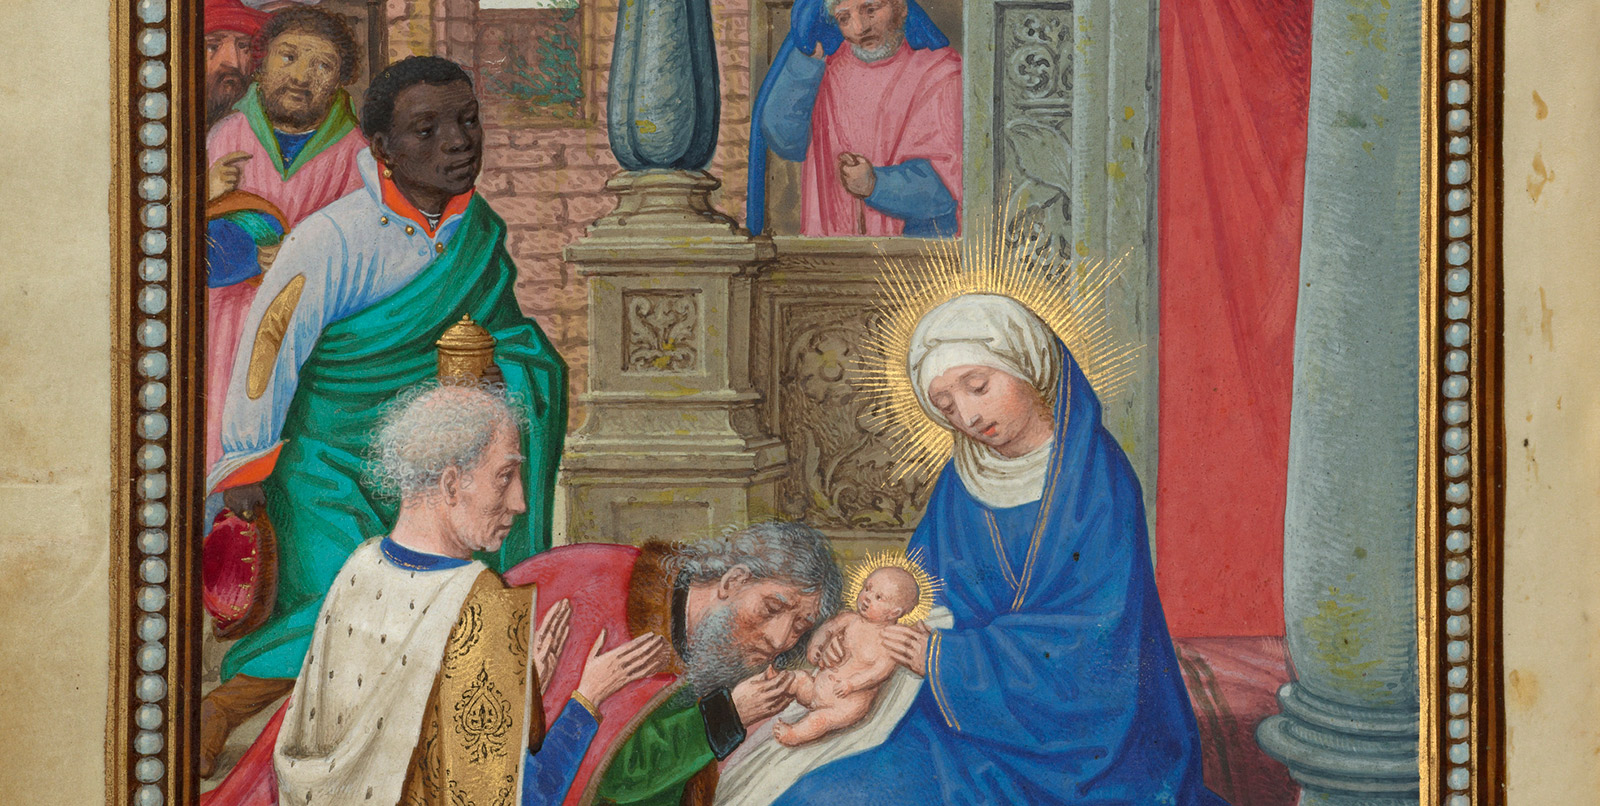 Mary holds the baby Jesus as Balthazar and others look on.